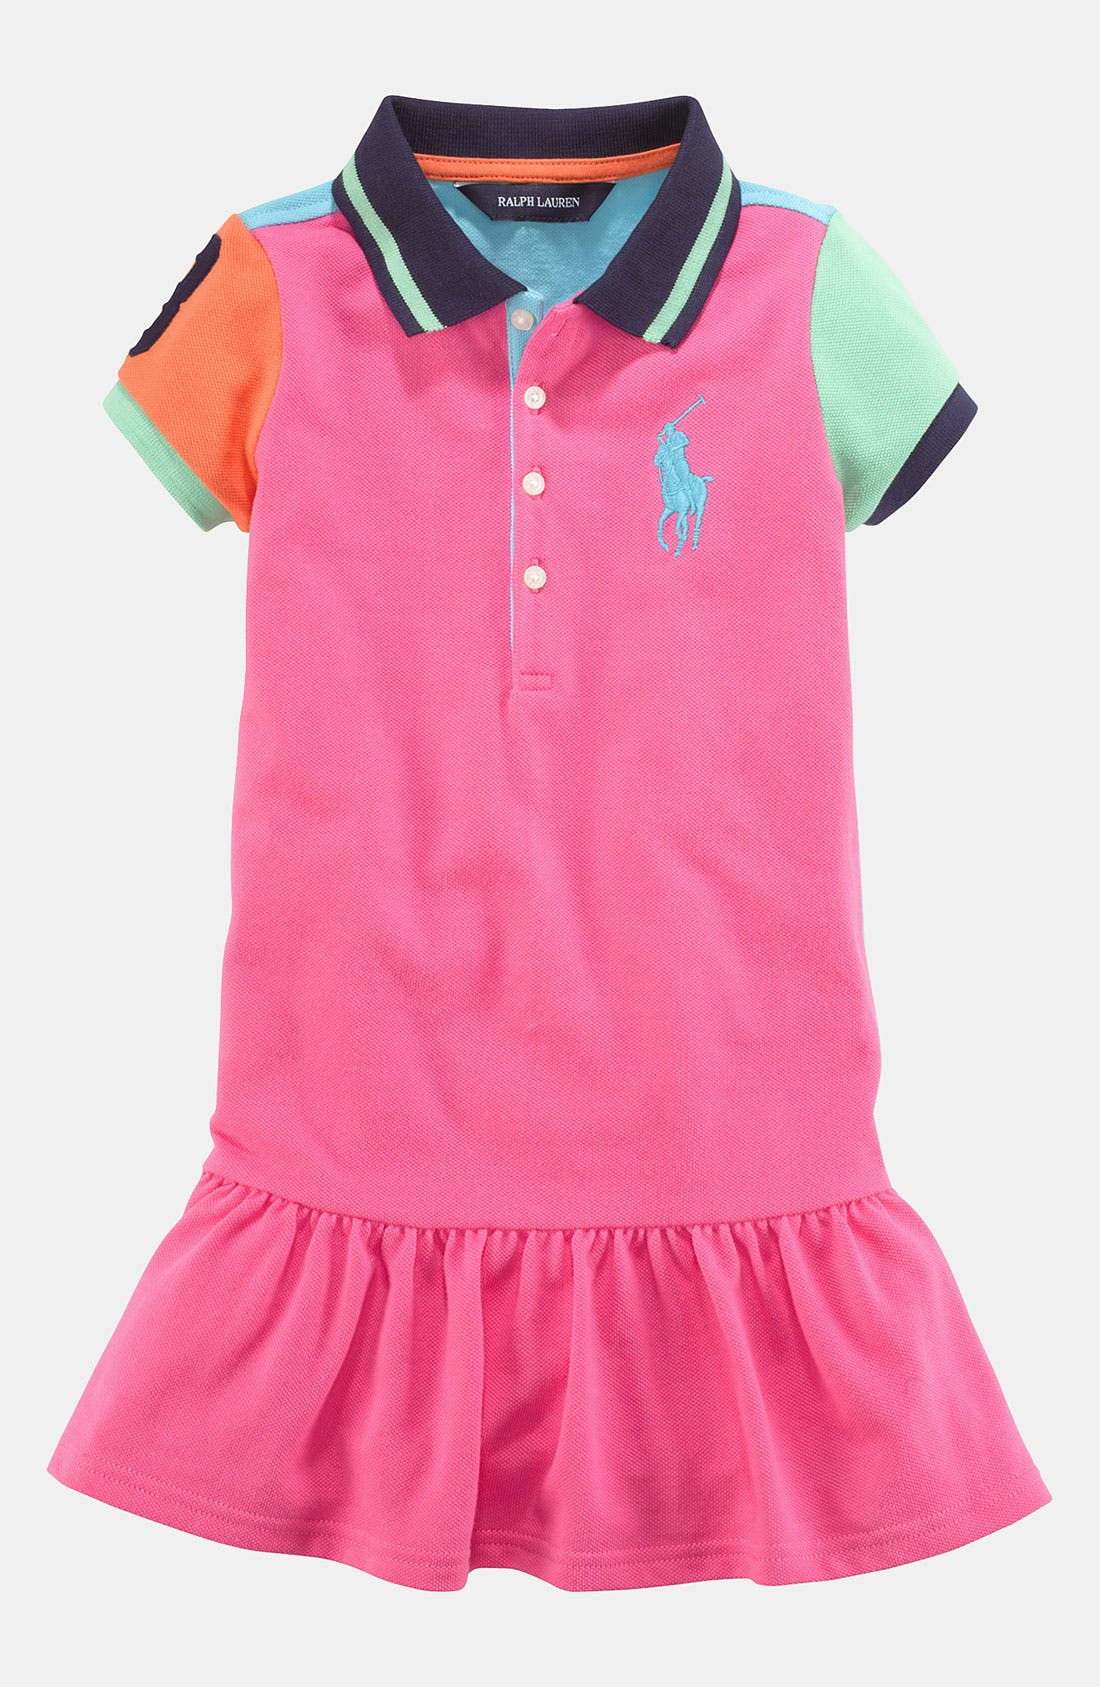 Alternate Image 1 Selected - Ralph Lauren Colorblock Polo Dress (Toddler)